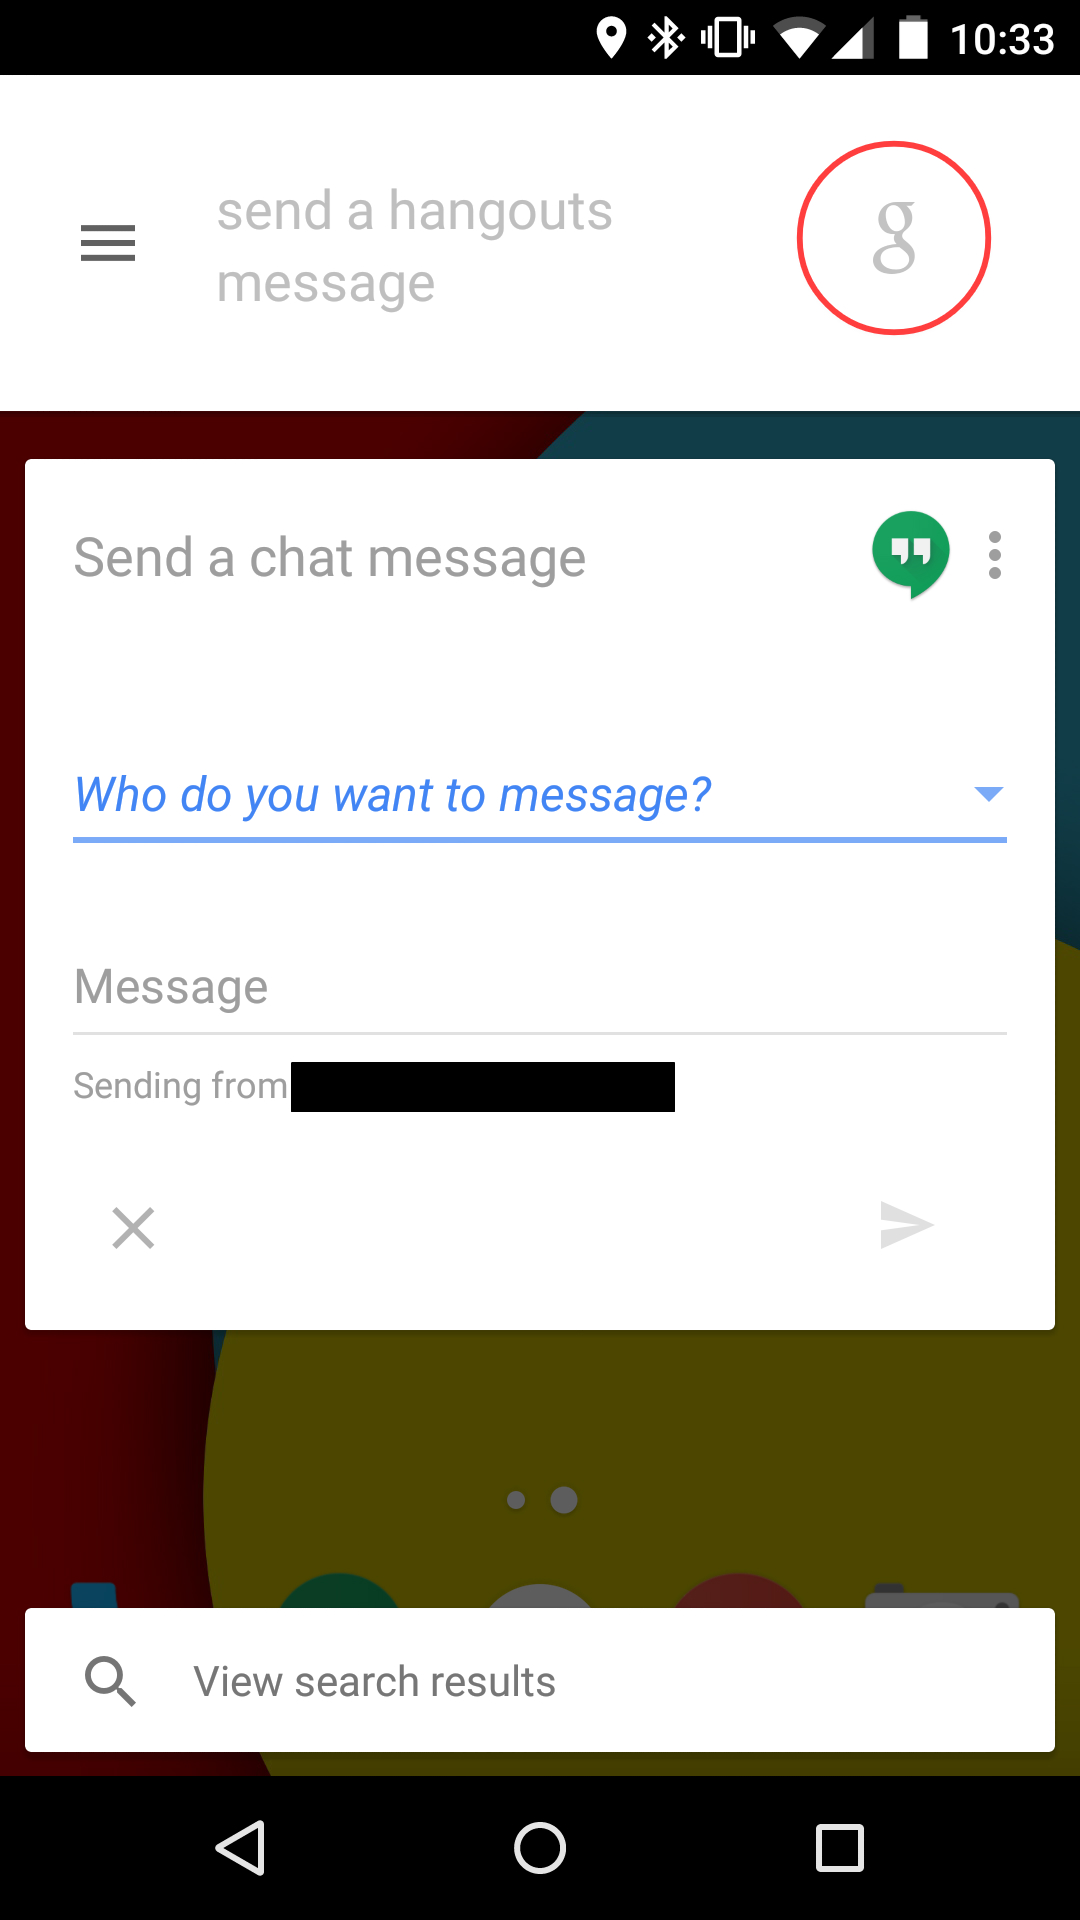 how to delete messages on hangouts